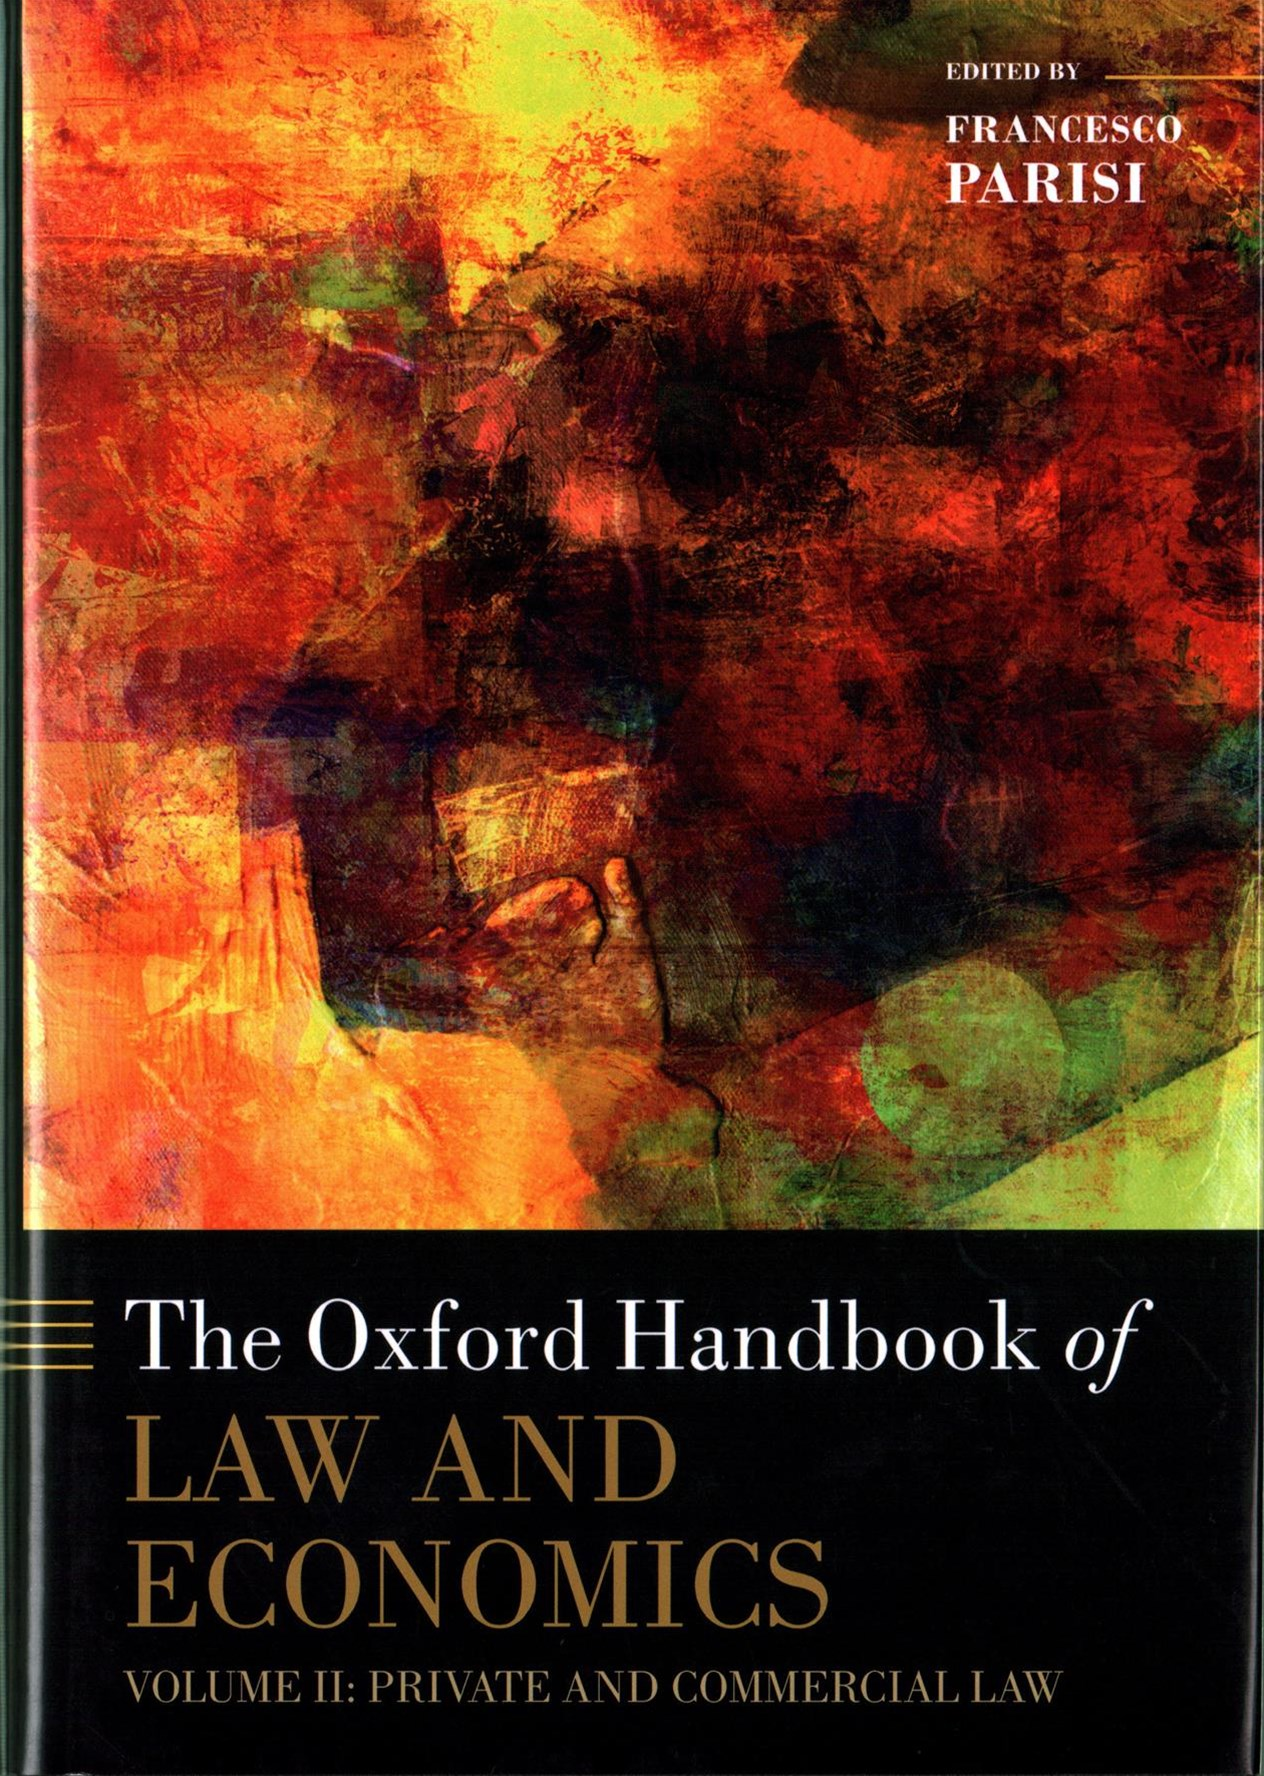 The Oxford Handbook of Law and Economics, Volume 2